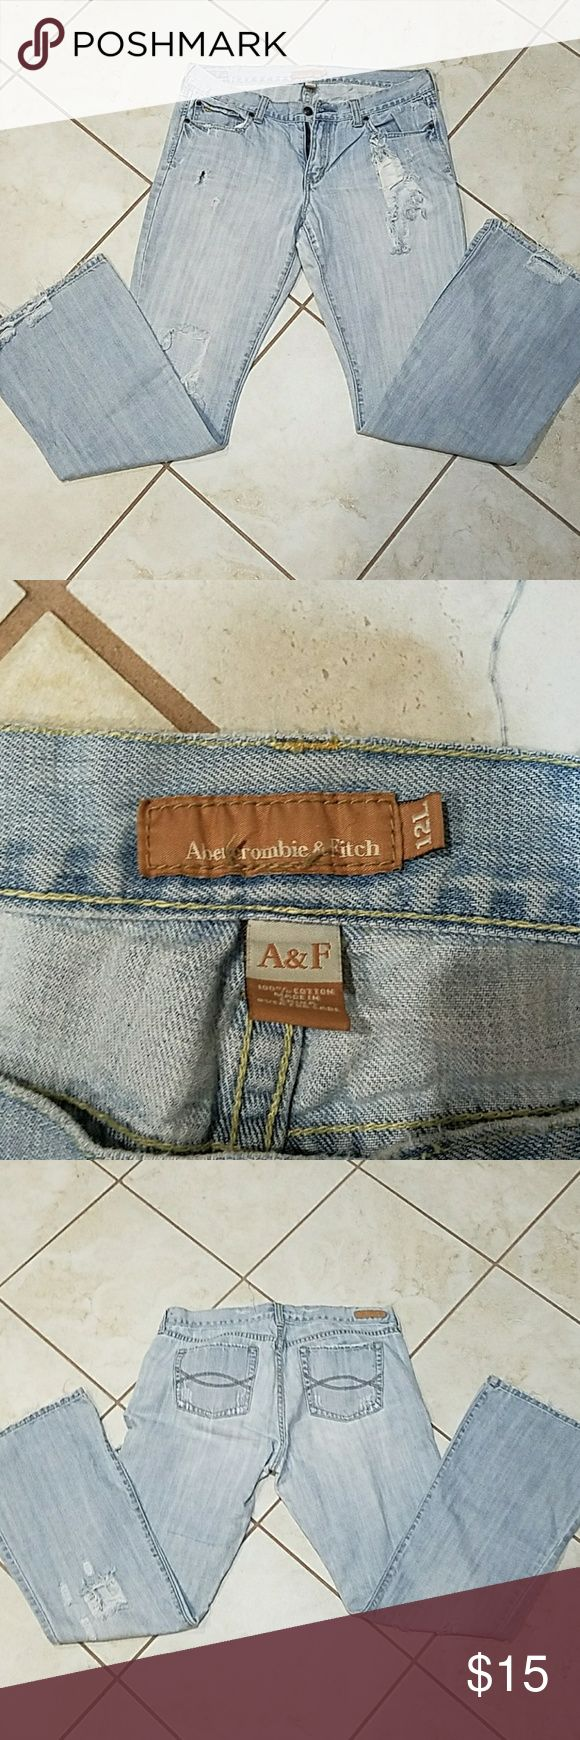 Woman's Abercrombie and Fitch Jeans Woman's Abercrombie and Fitch Jeans... Used but in good condition... Sizing reads 12 long... Abercrombie & Fitch Jeans Boot Cut